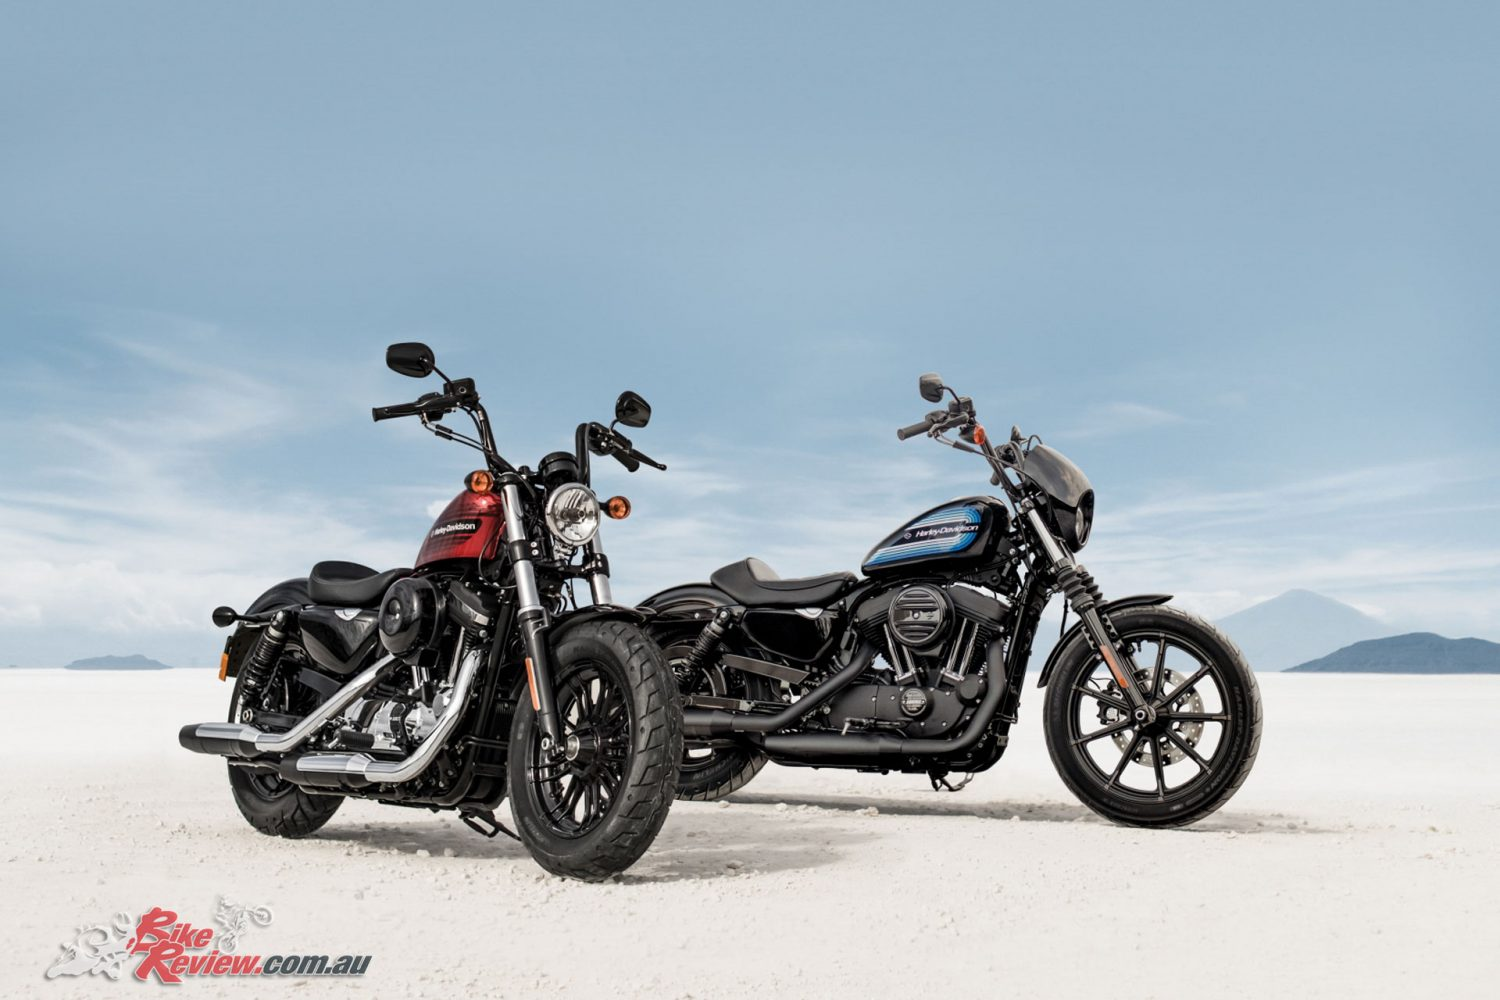 2018 Harley-Davidson Iron 1200 and Forty-Eight